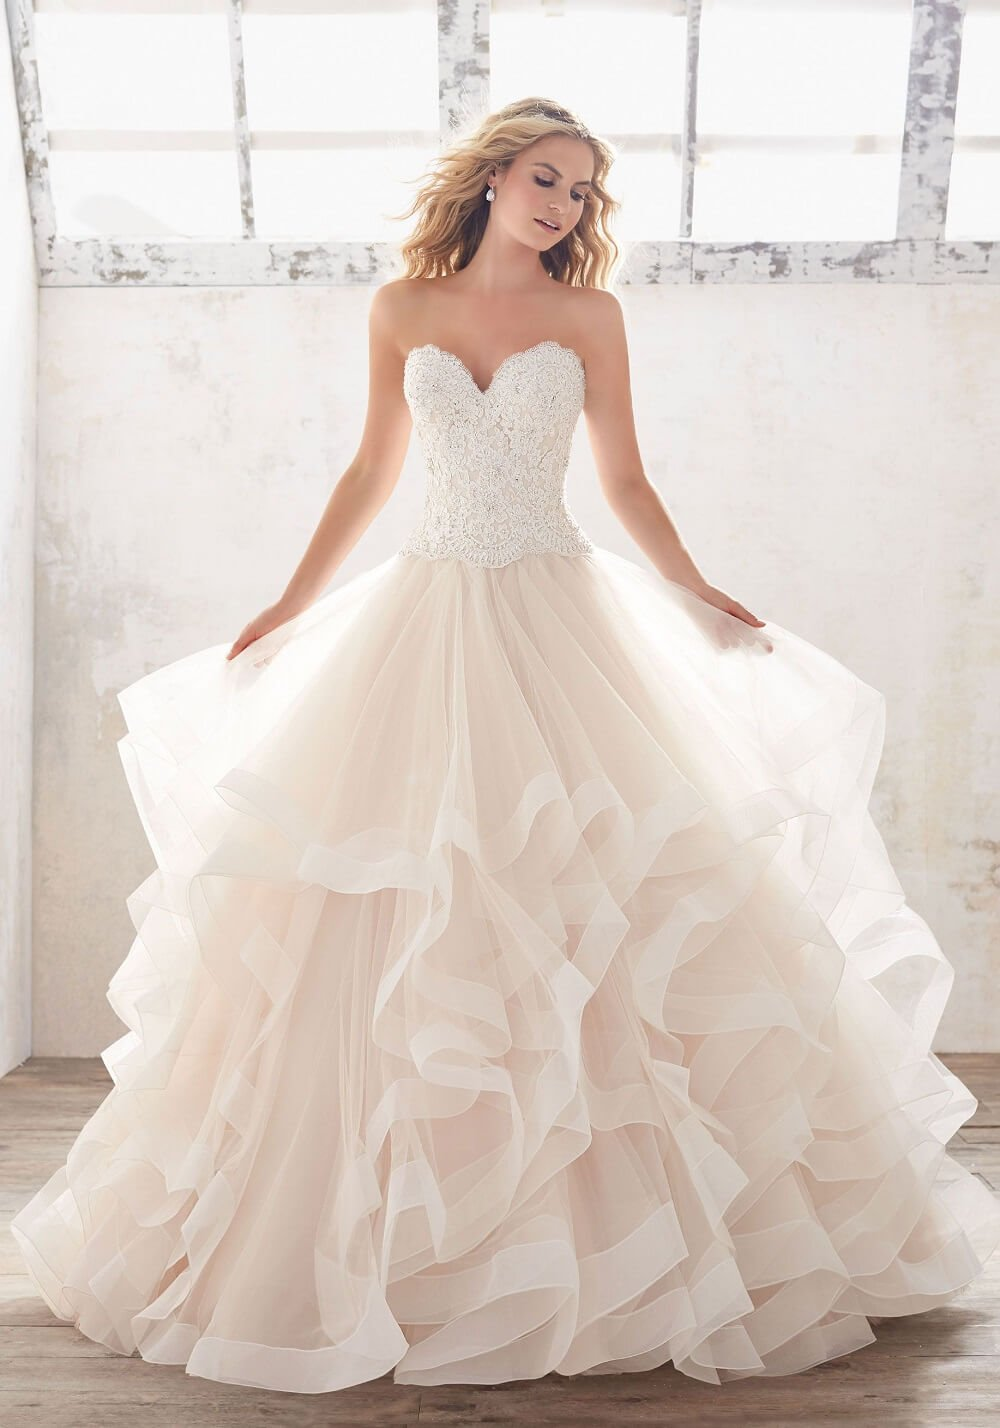 #6 Trending Bridal Gown Designs Perfect For Flaunting At White Weddings